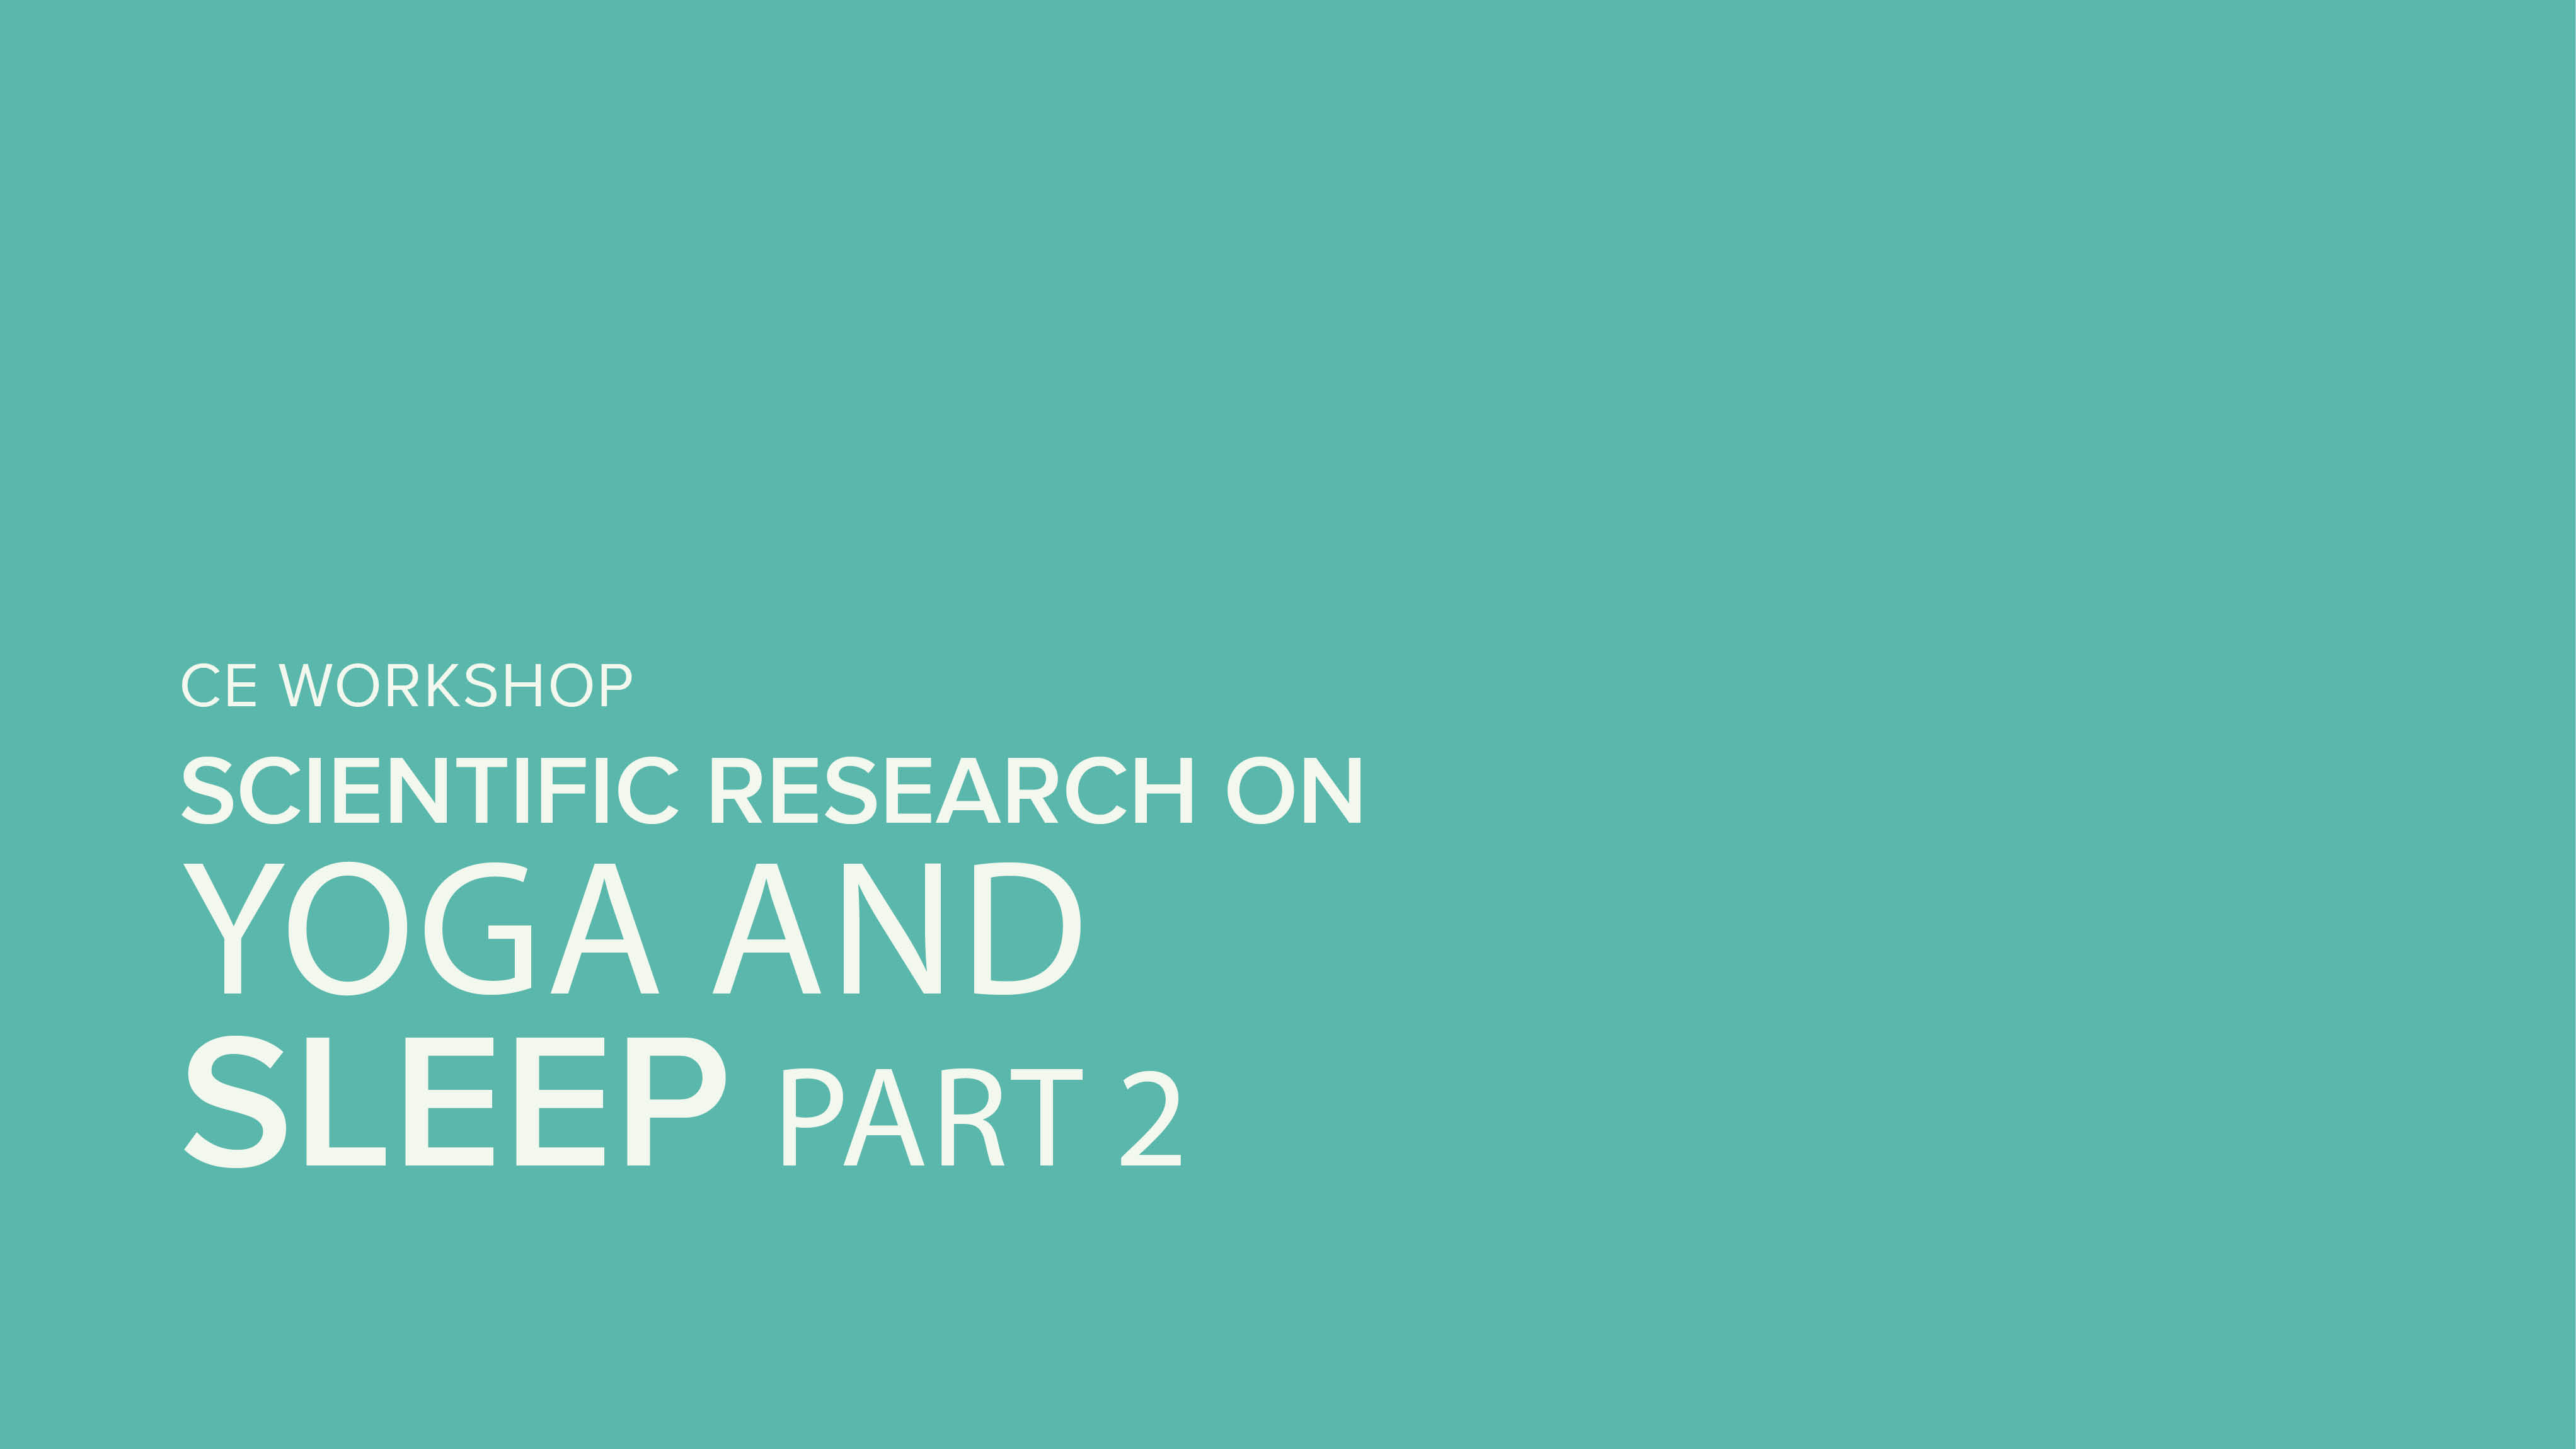 CE Workshop | Scientific Research on Yoga and Sleep, Part 2